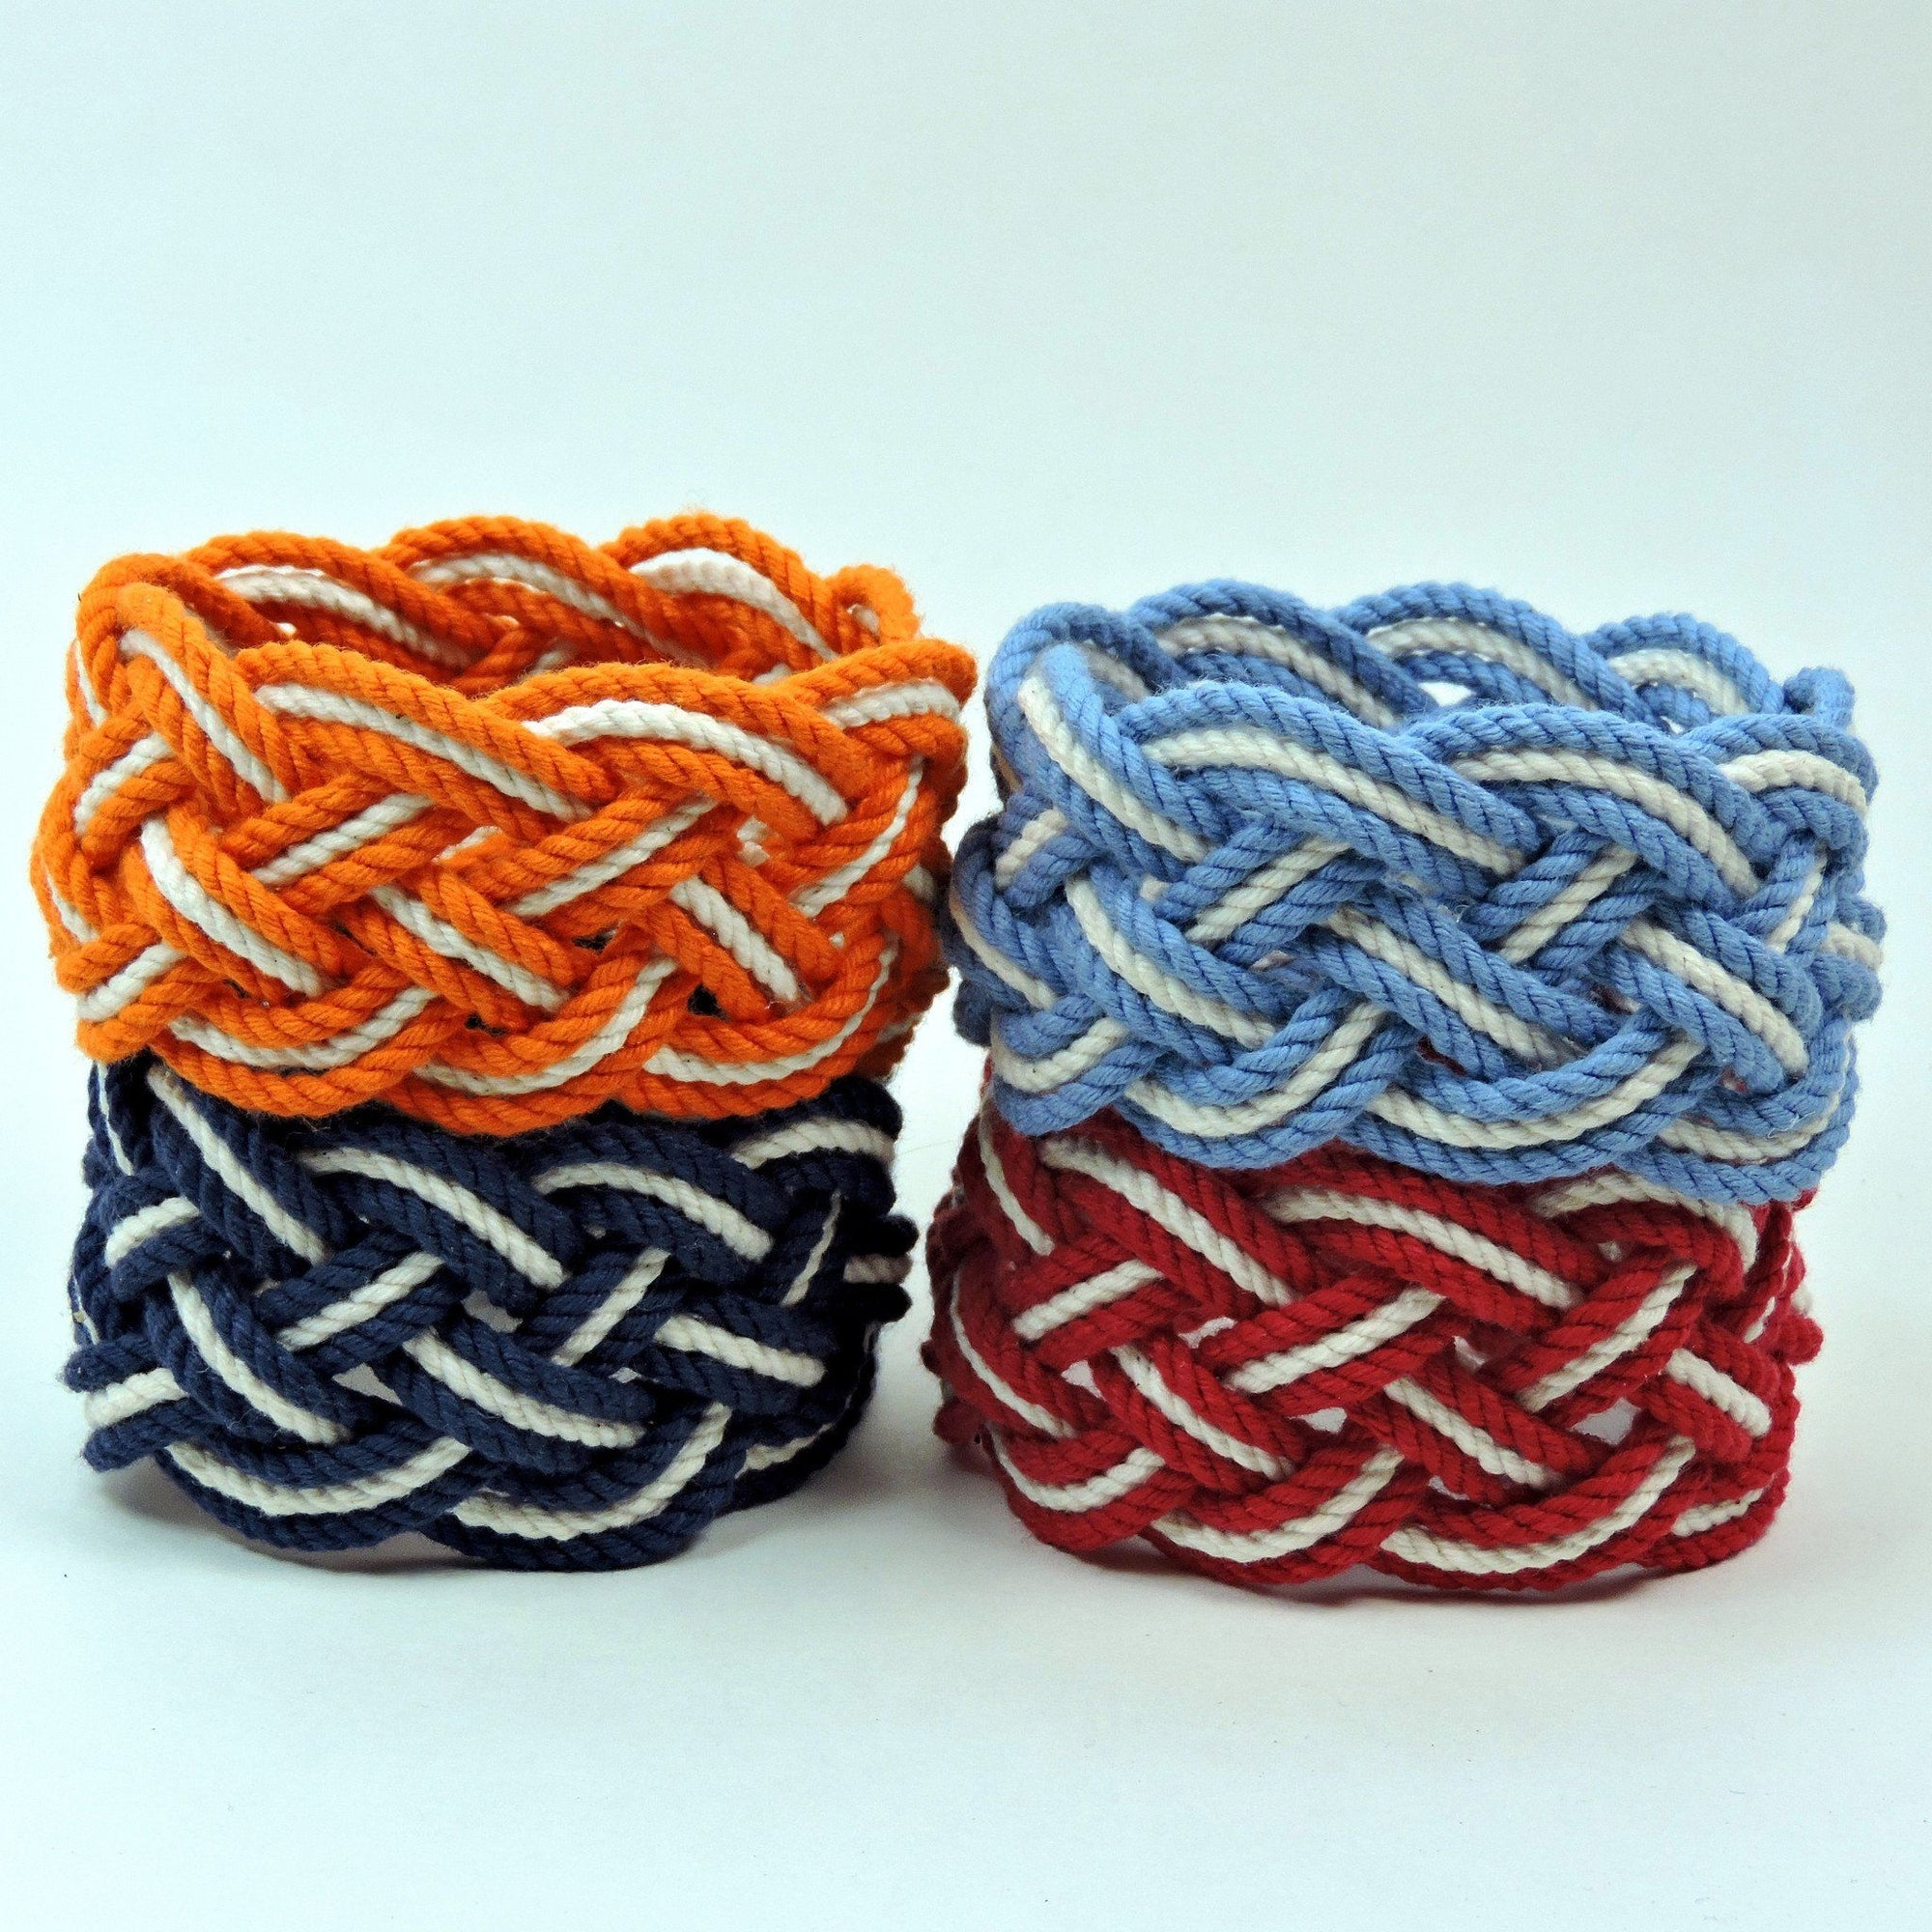 Nautical Wide Striped Sailor Knot Bracelet Handmade sailor knot American Made in Mystic, CT $ 14.00